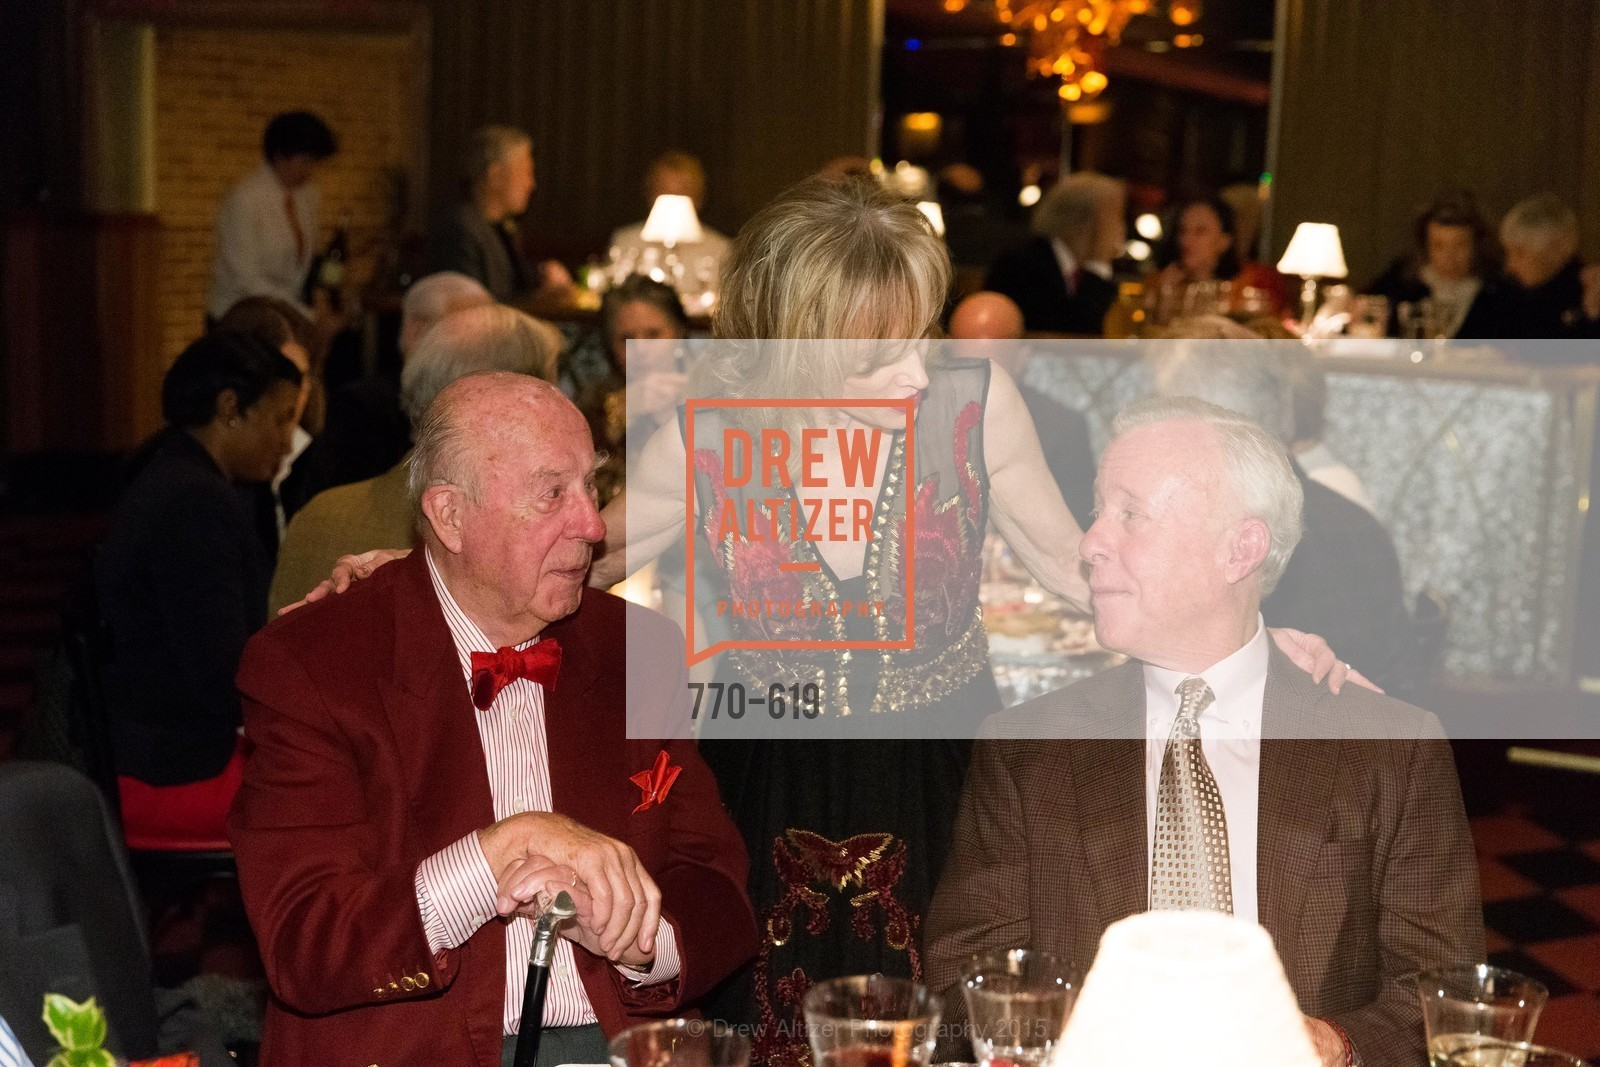 George Shultz, OJ Shansby, Photo #770-619